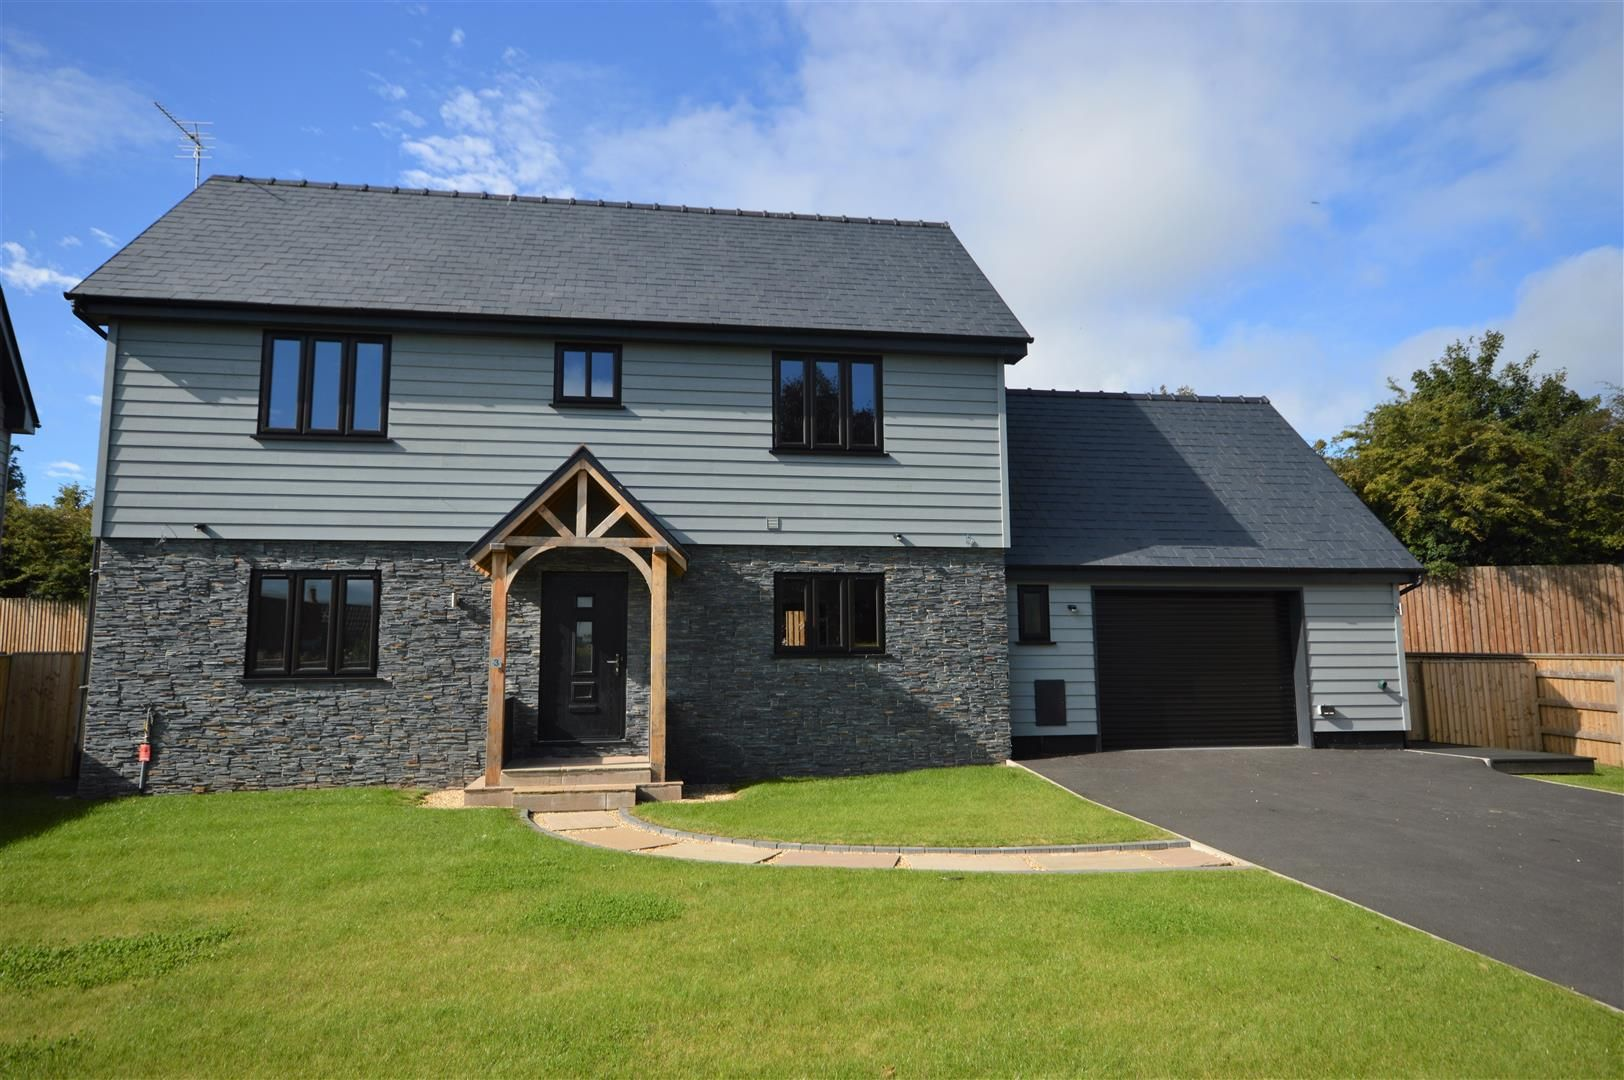 4 bed detached for sale in Brimfield, SY8